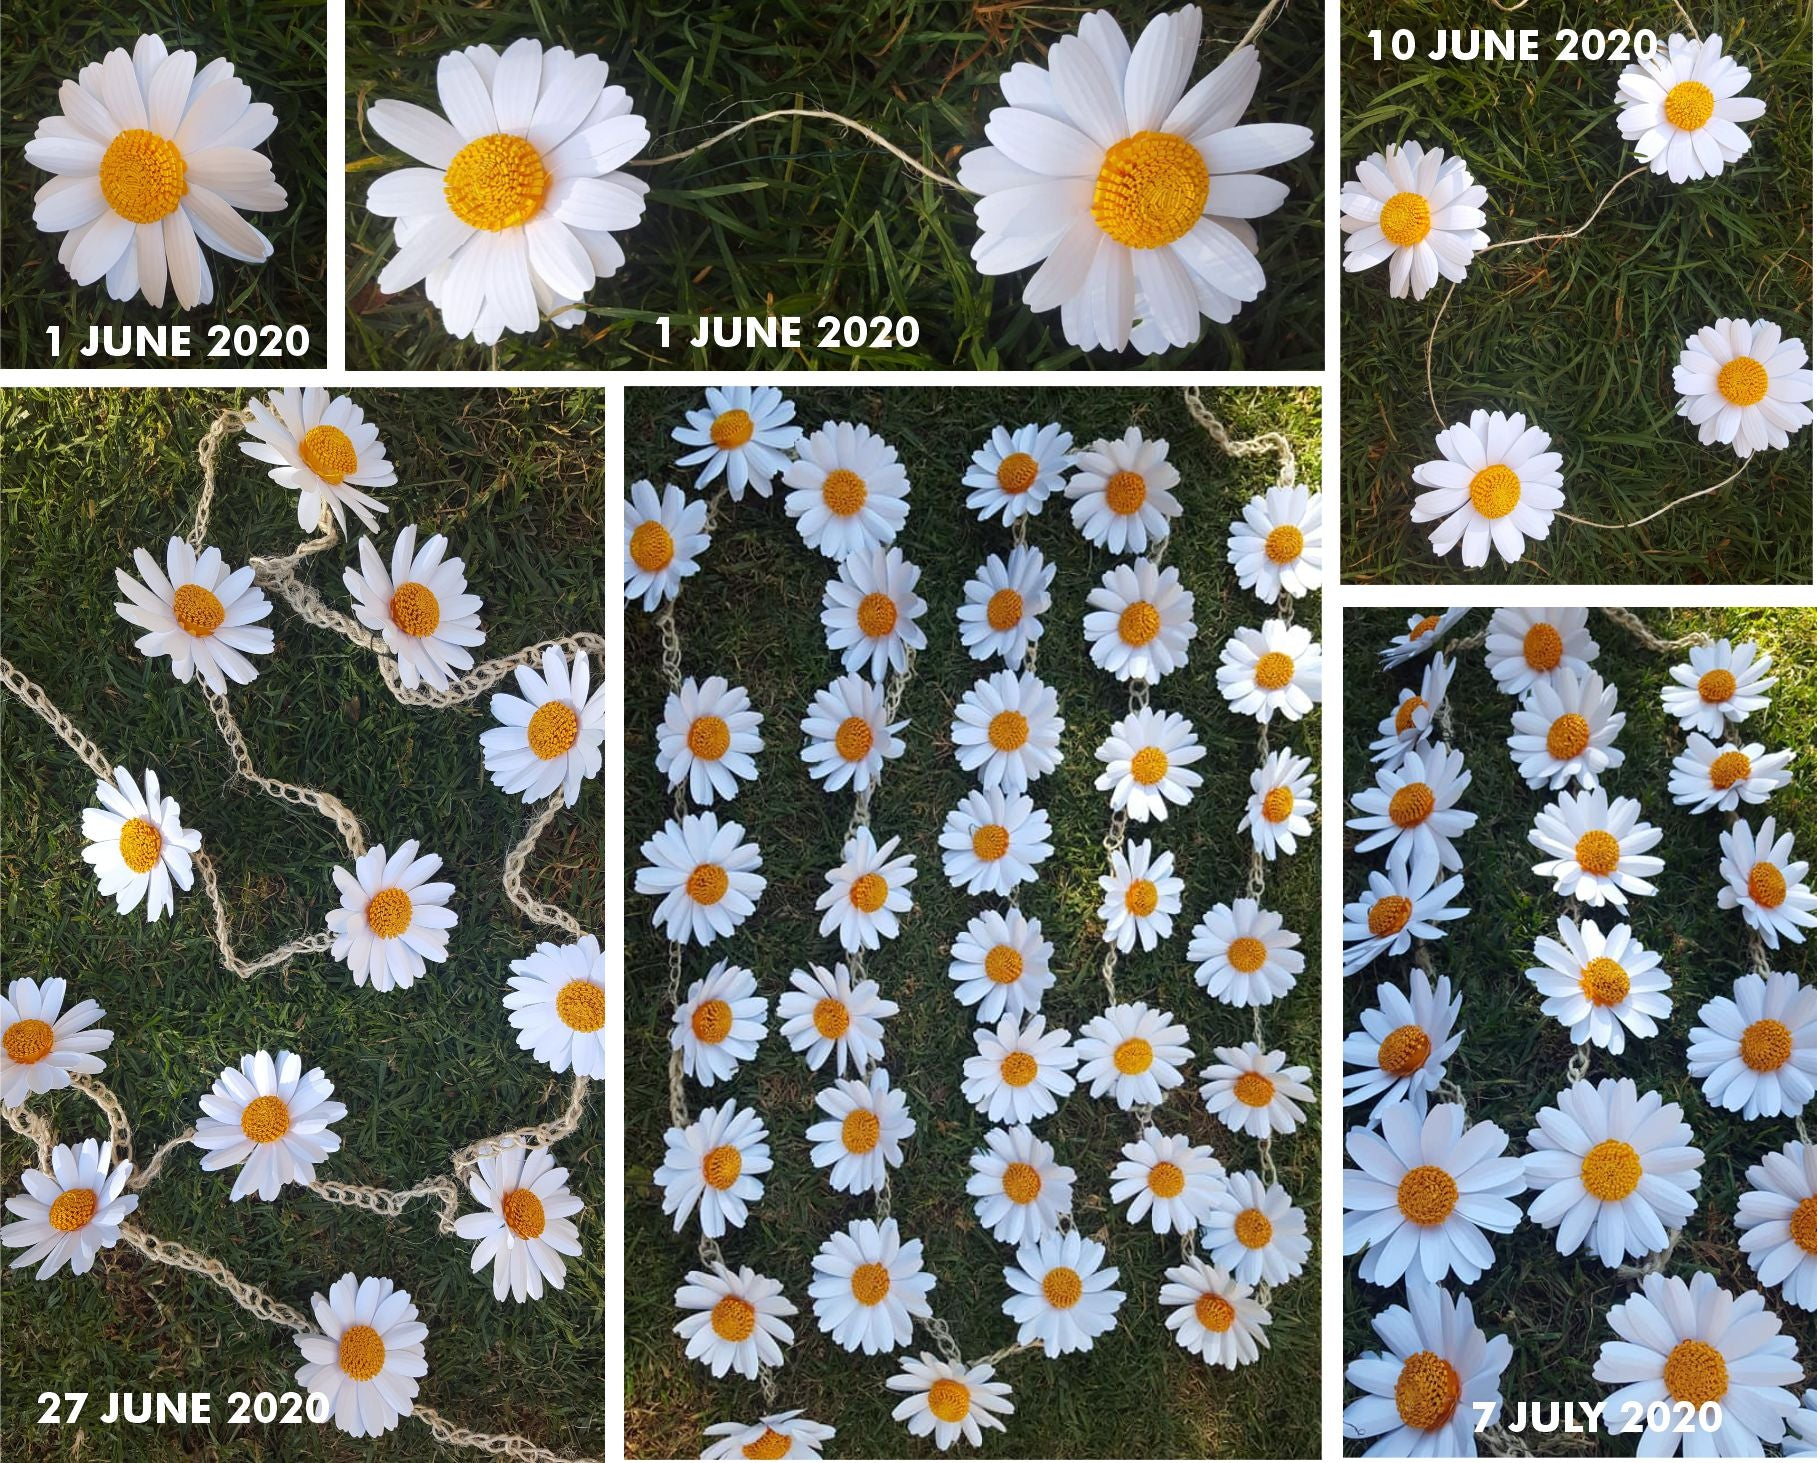 Diary of The Daisy Chain - Chain of Remembrance